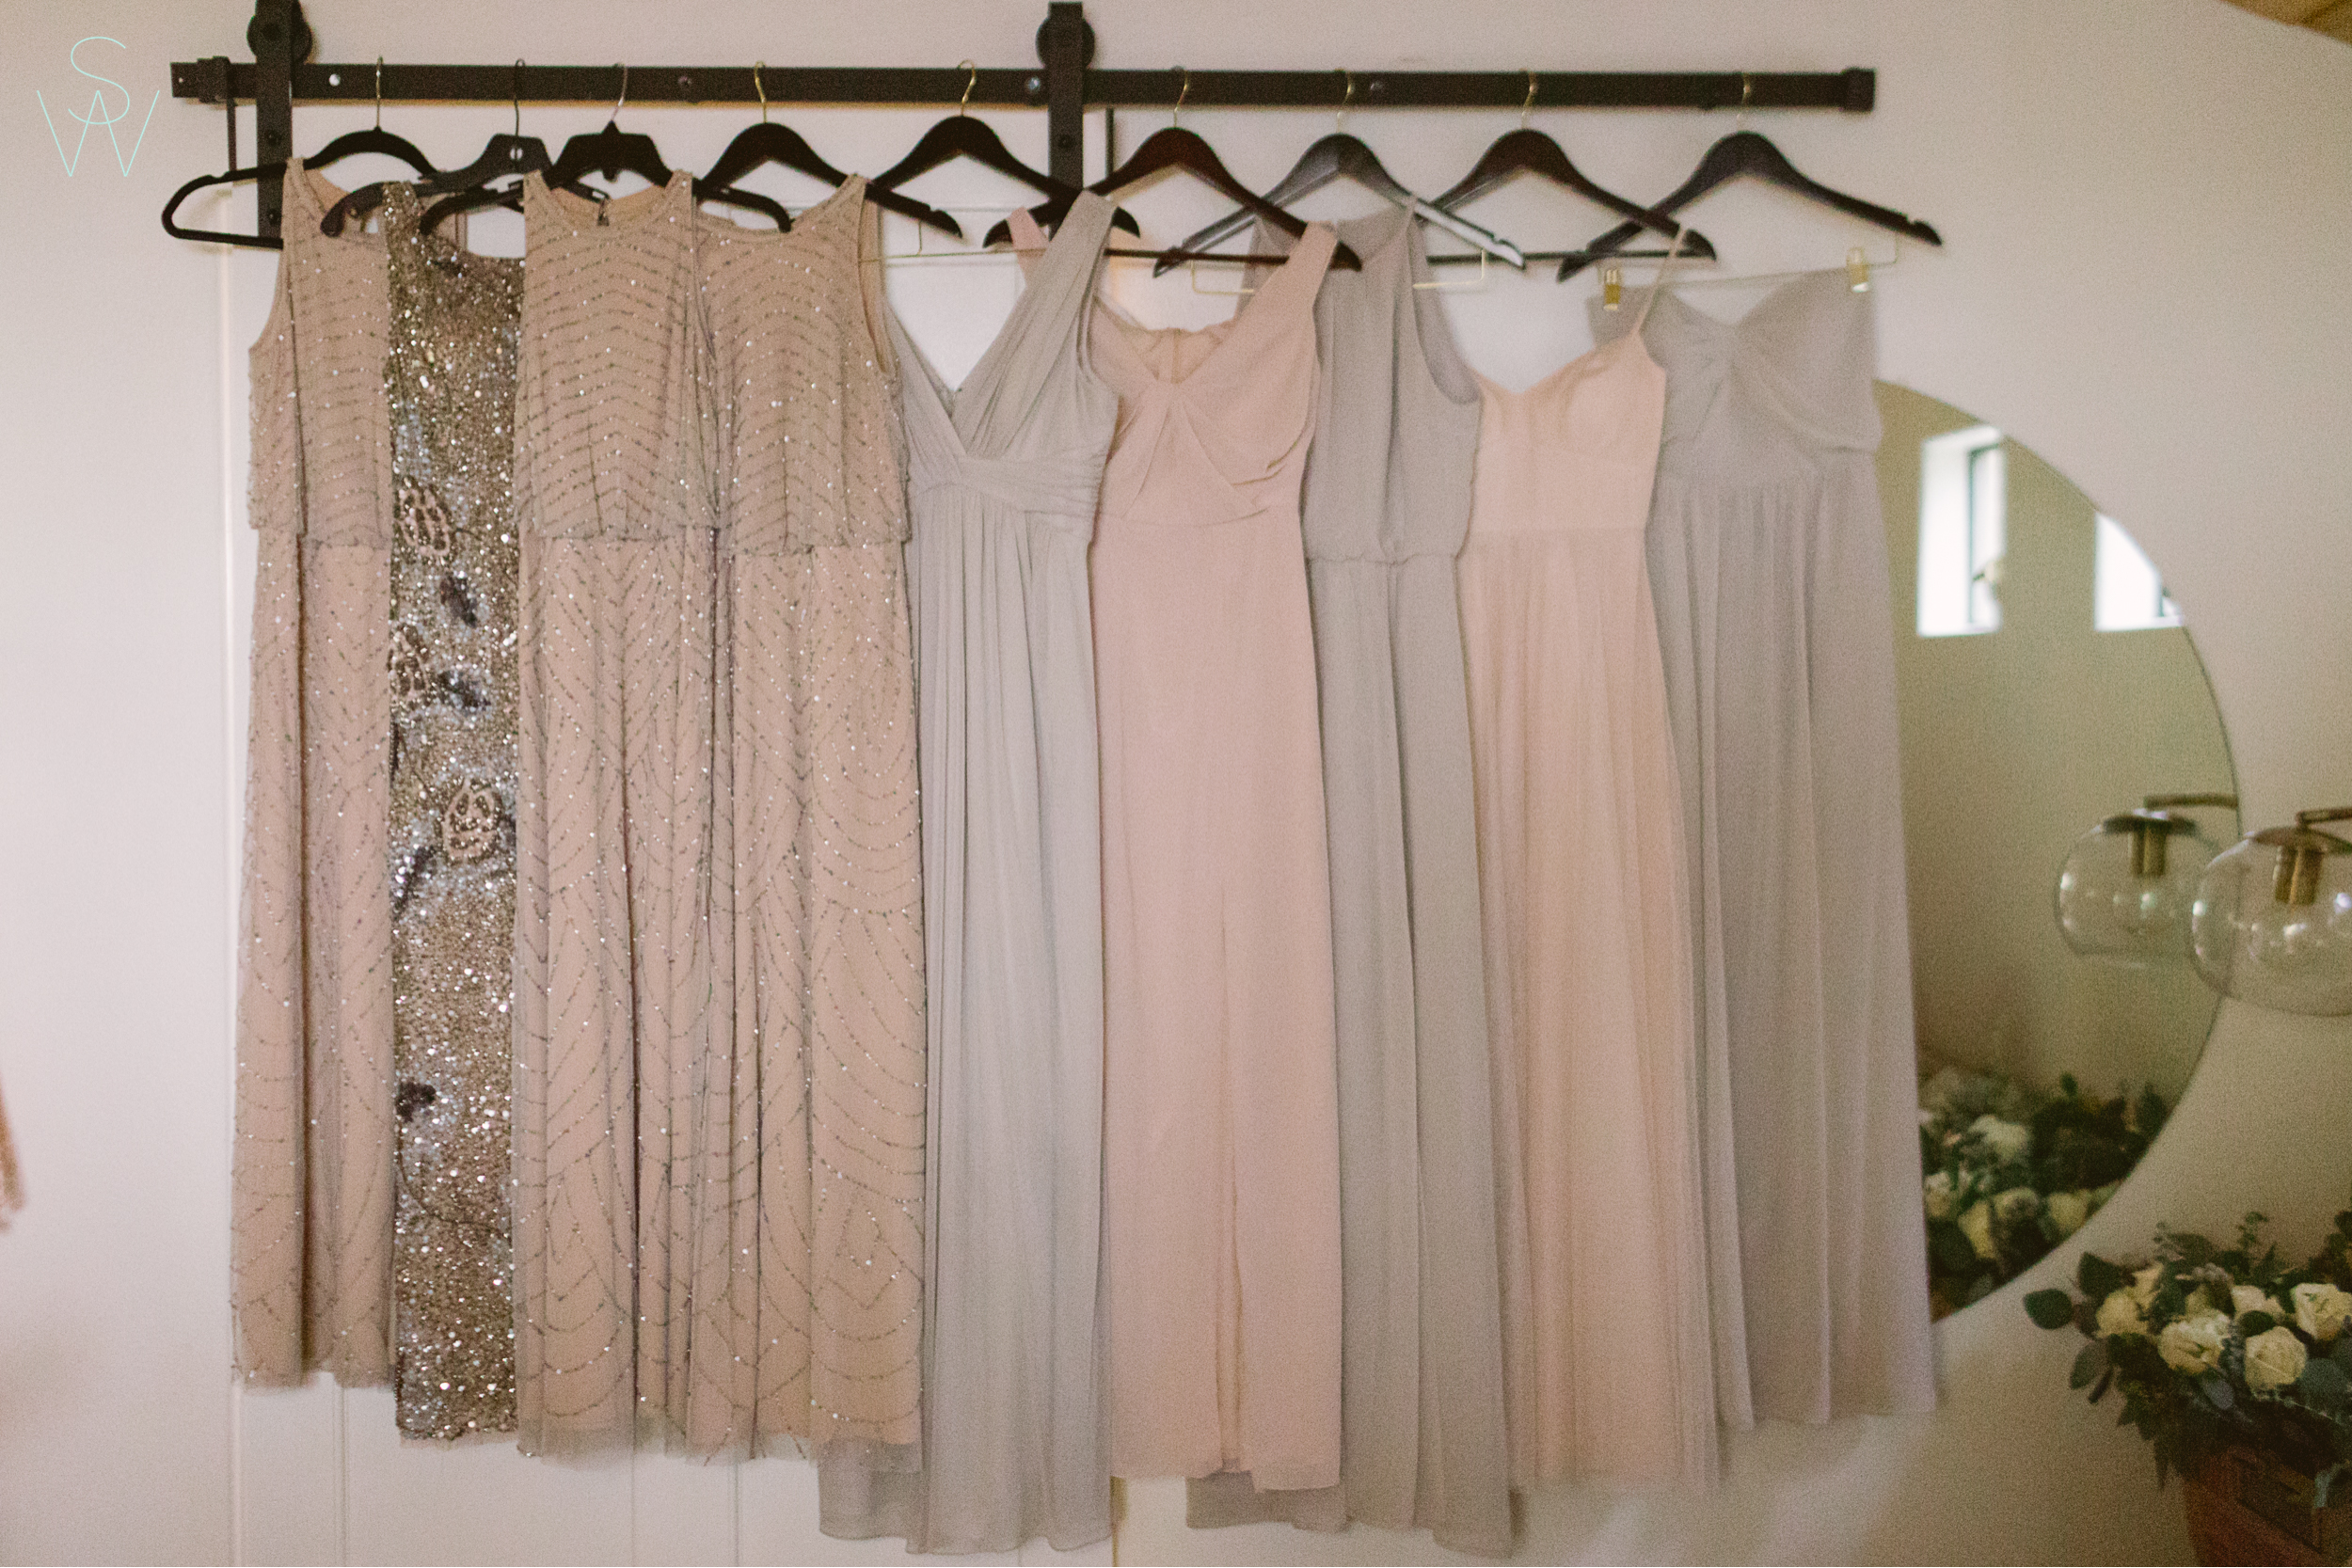 104Calamigos.ranch.shewanders.wedding.bridesmaids.neutral.dress.photography.JPG